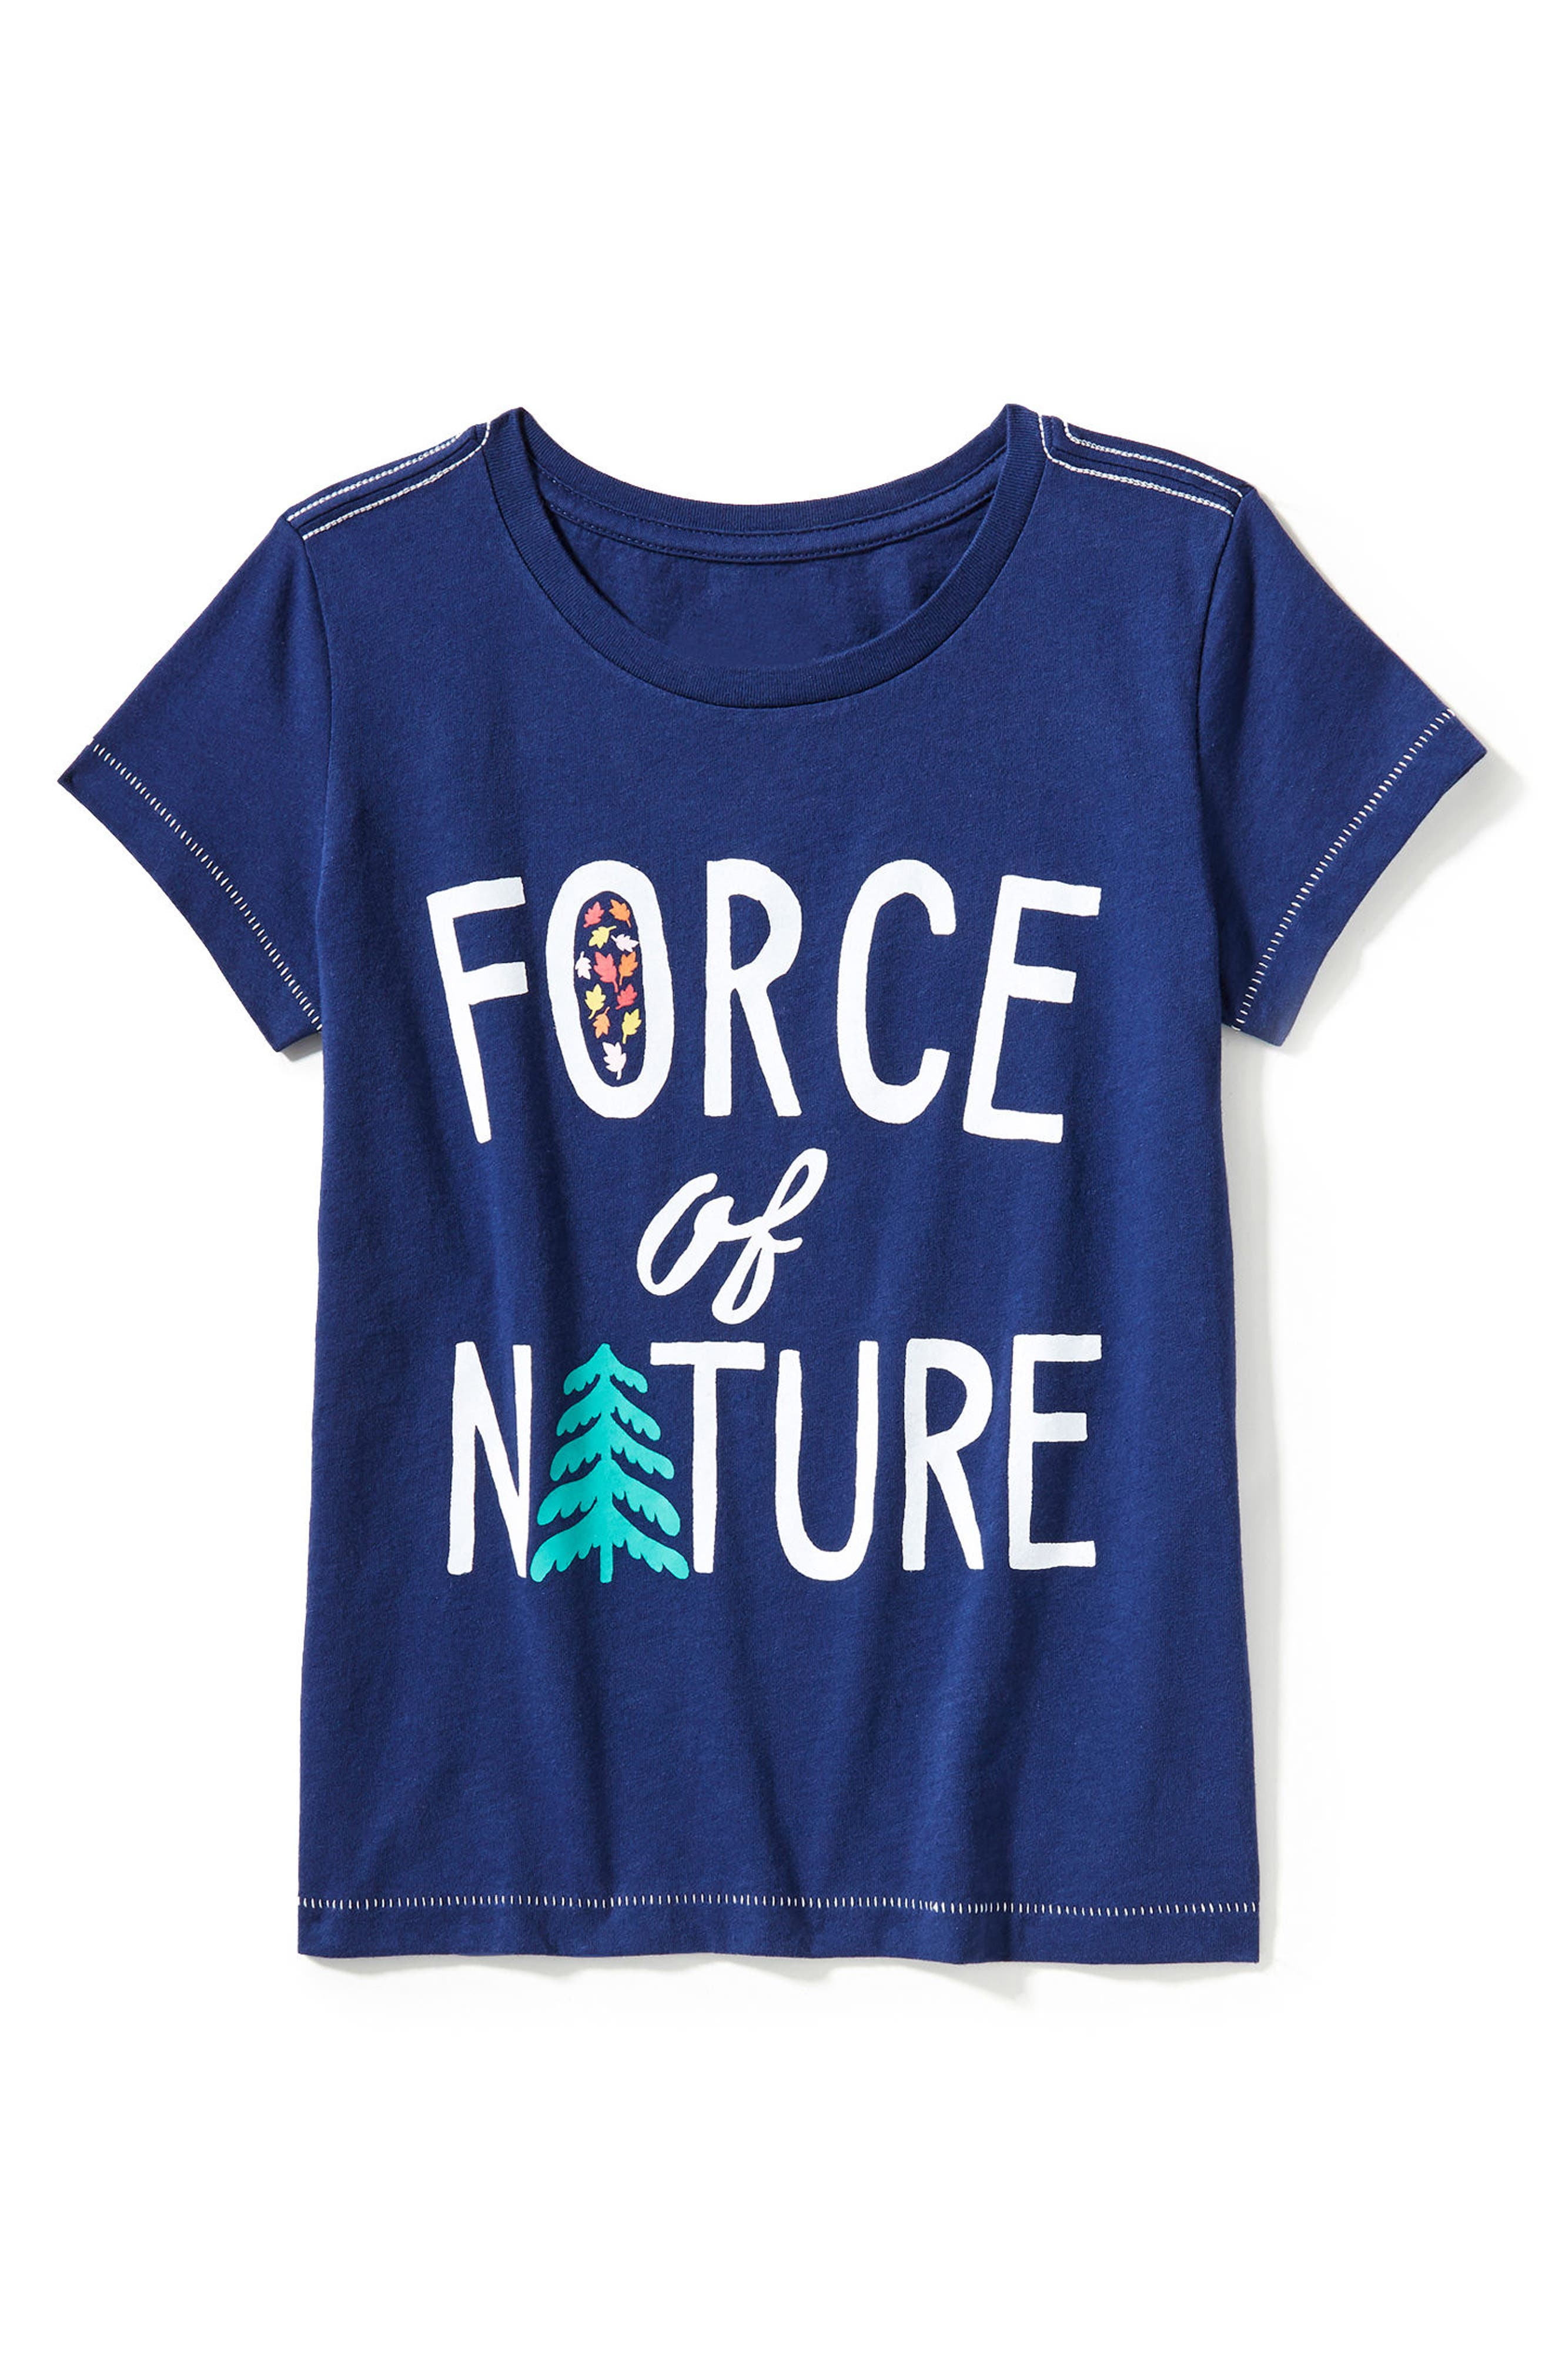 Force of Nature Graphic Tee,                         Main,                         color, Navy